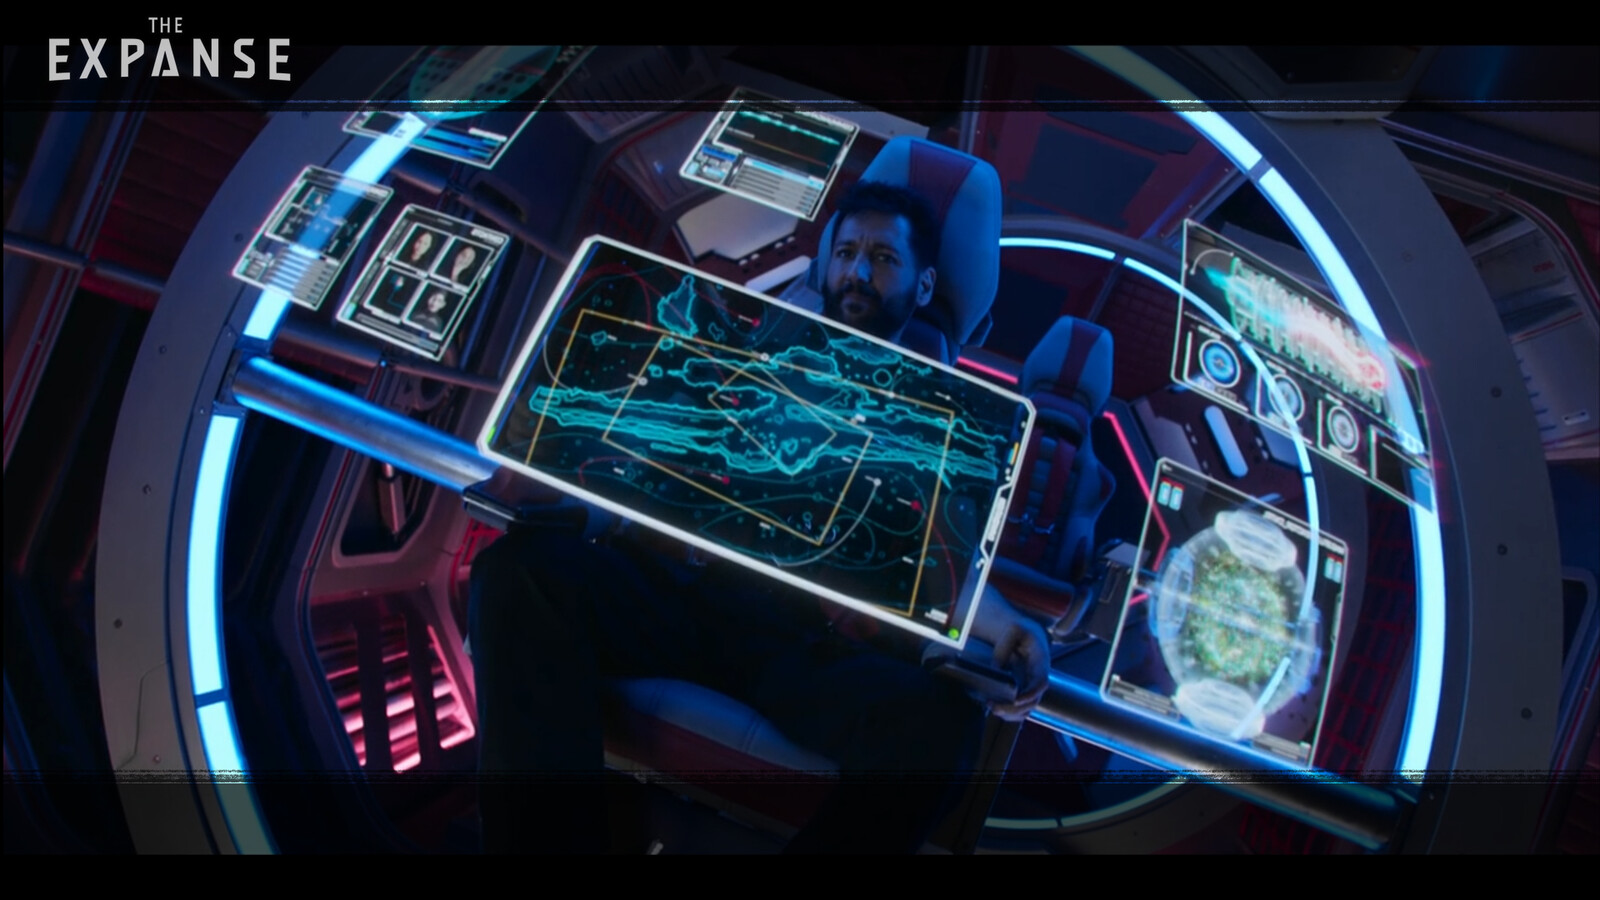 The UI completed in the final shot.